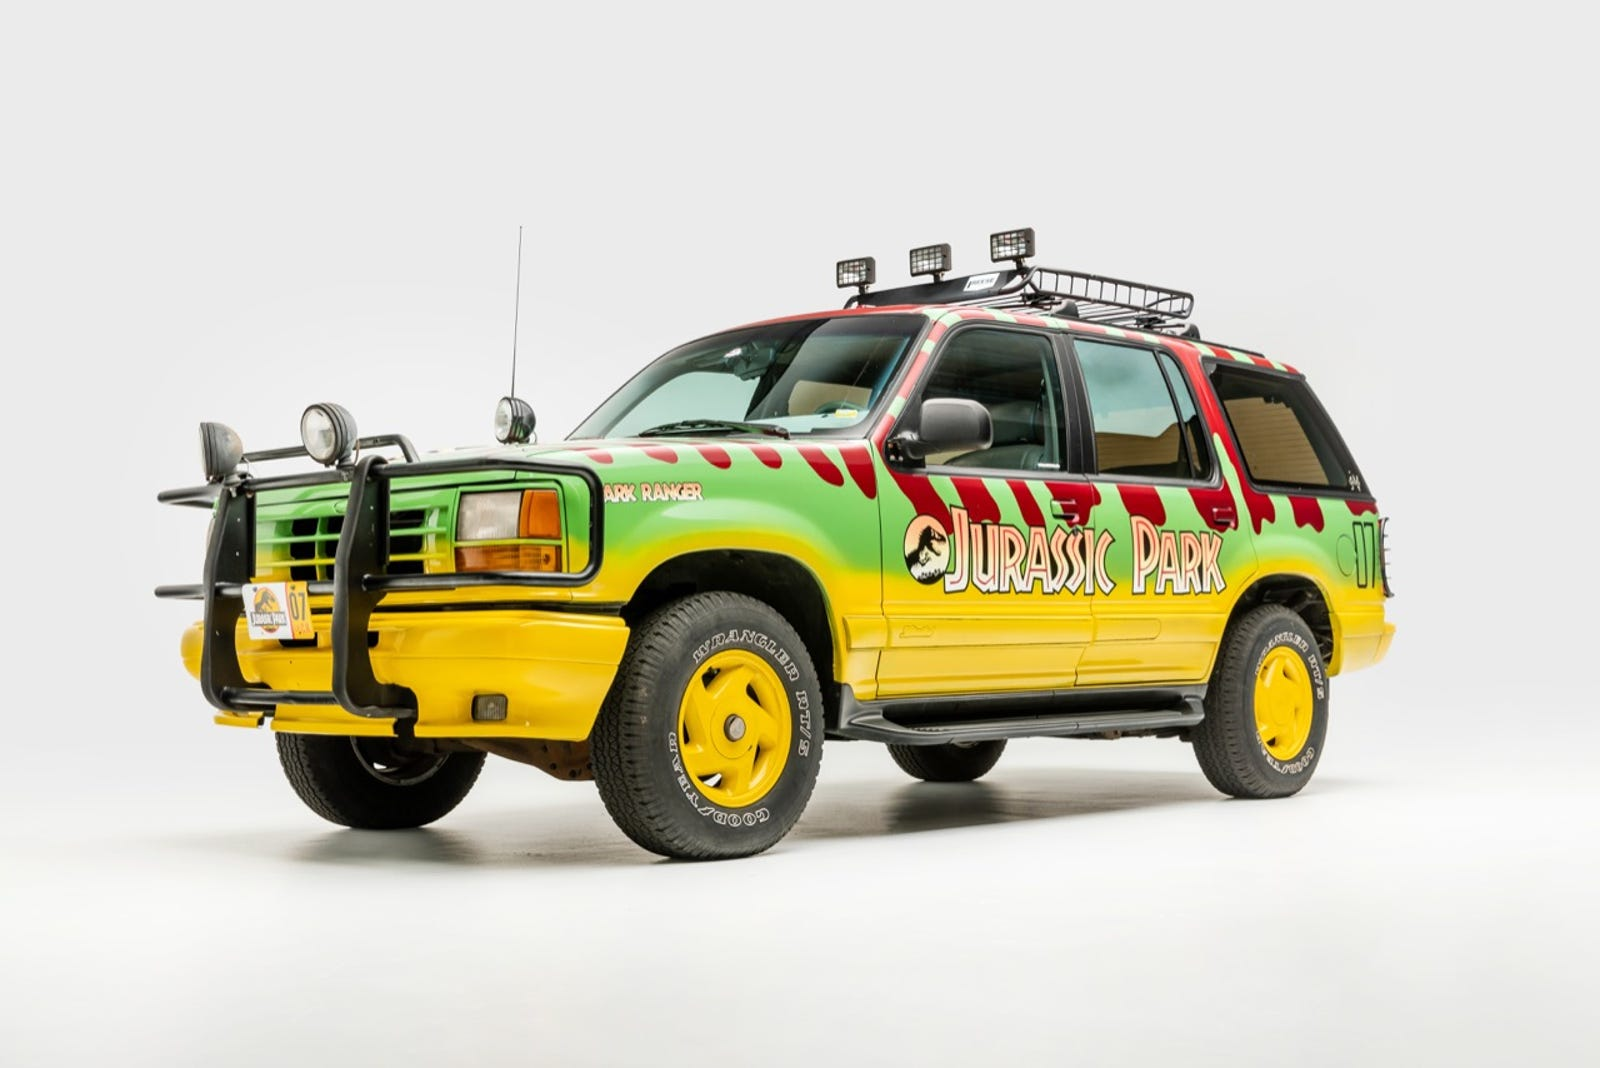 Ford Explorer XLT Tour Vehicle #07 (filming replica), as depicted in the film Jurassic Park (1993) Designer: Universal Pictures